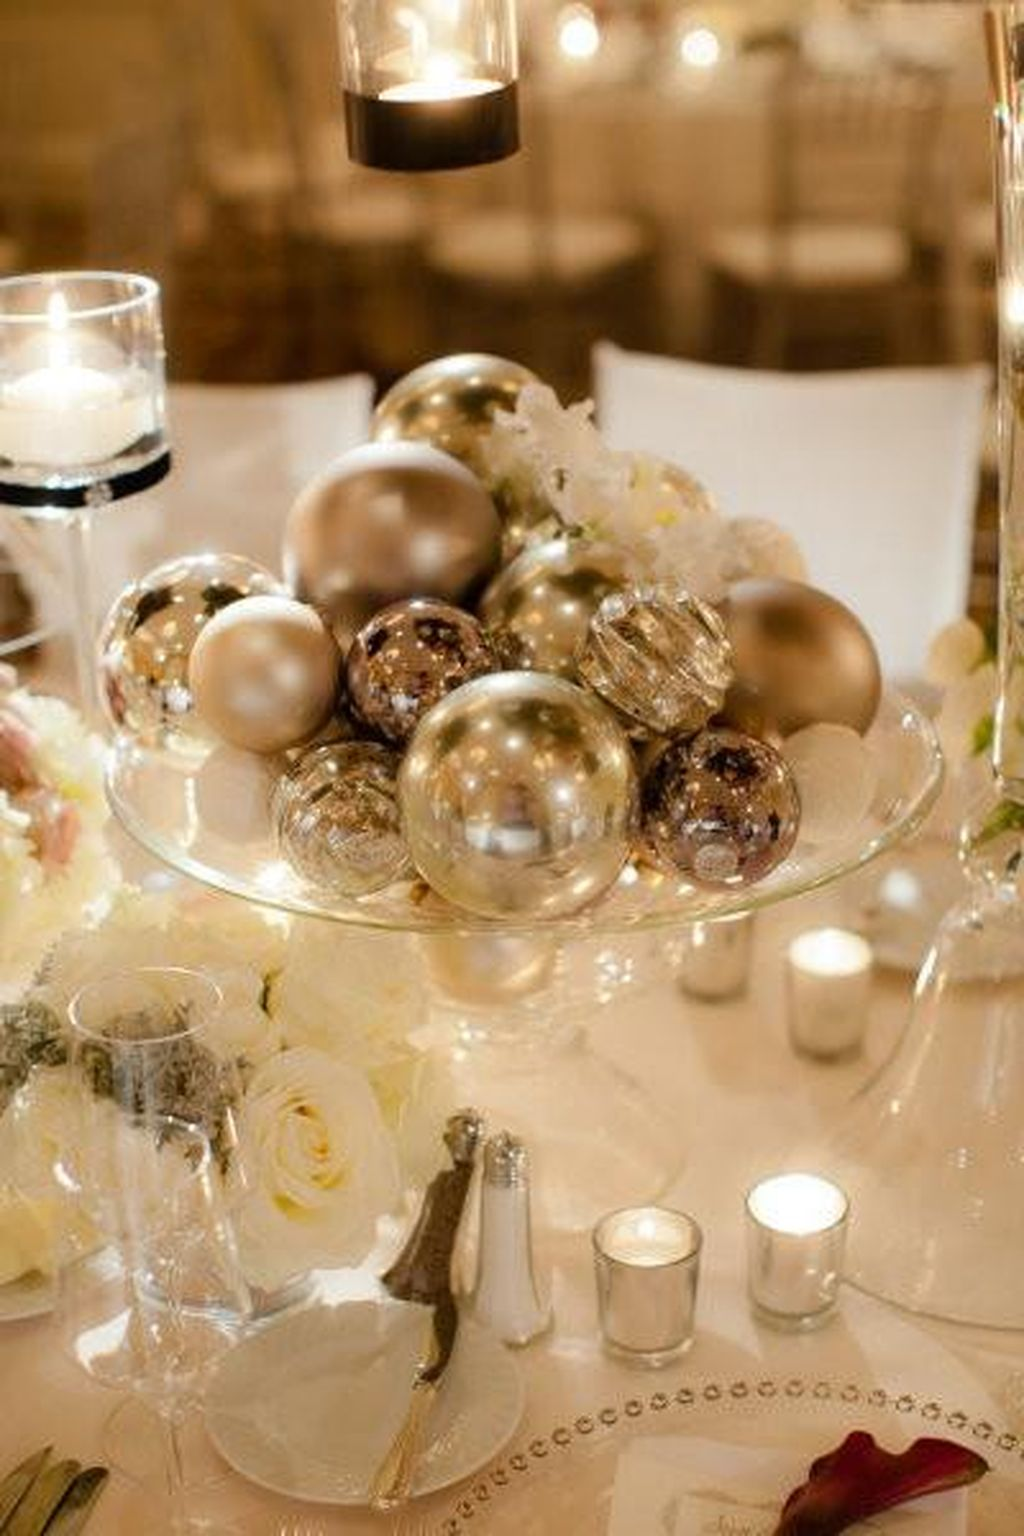 Inspiring Modern Rustic Christmas Centerpieces Ideas With Candles 76